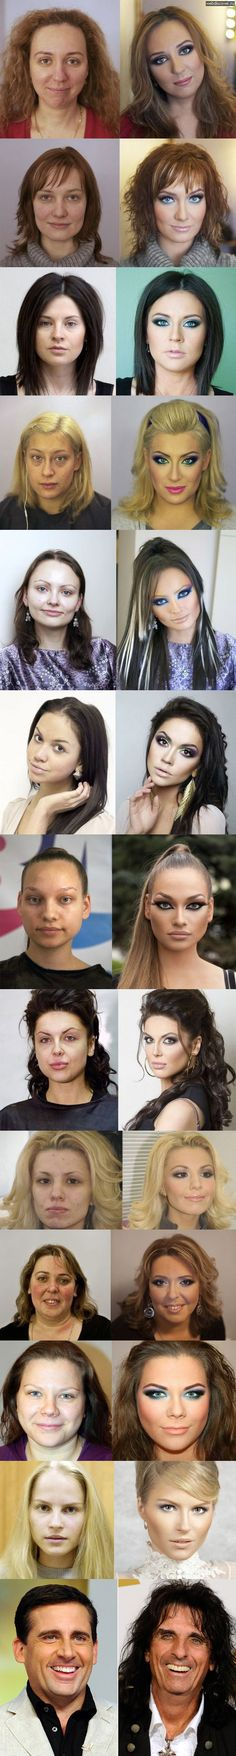 All this proves is that 10 pounds of spakle/makeup will hide every single insecurity you have. Ladies, makeup does not make the woman.